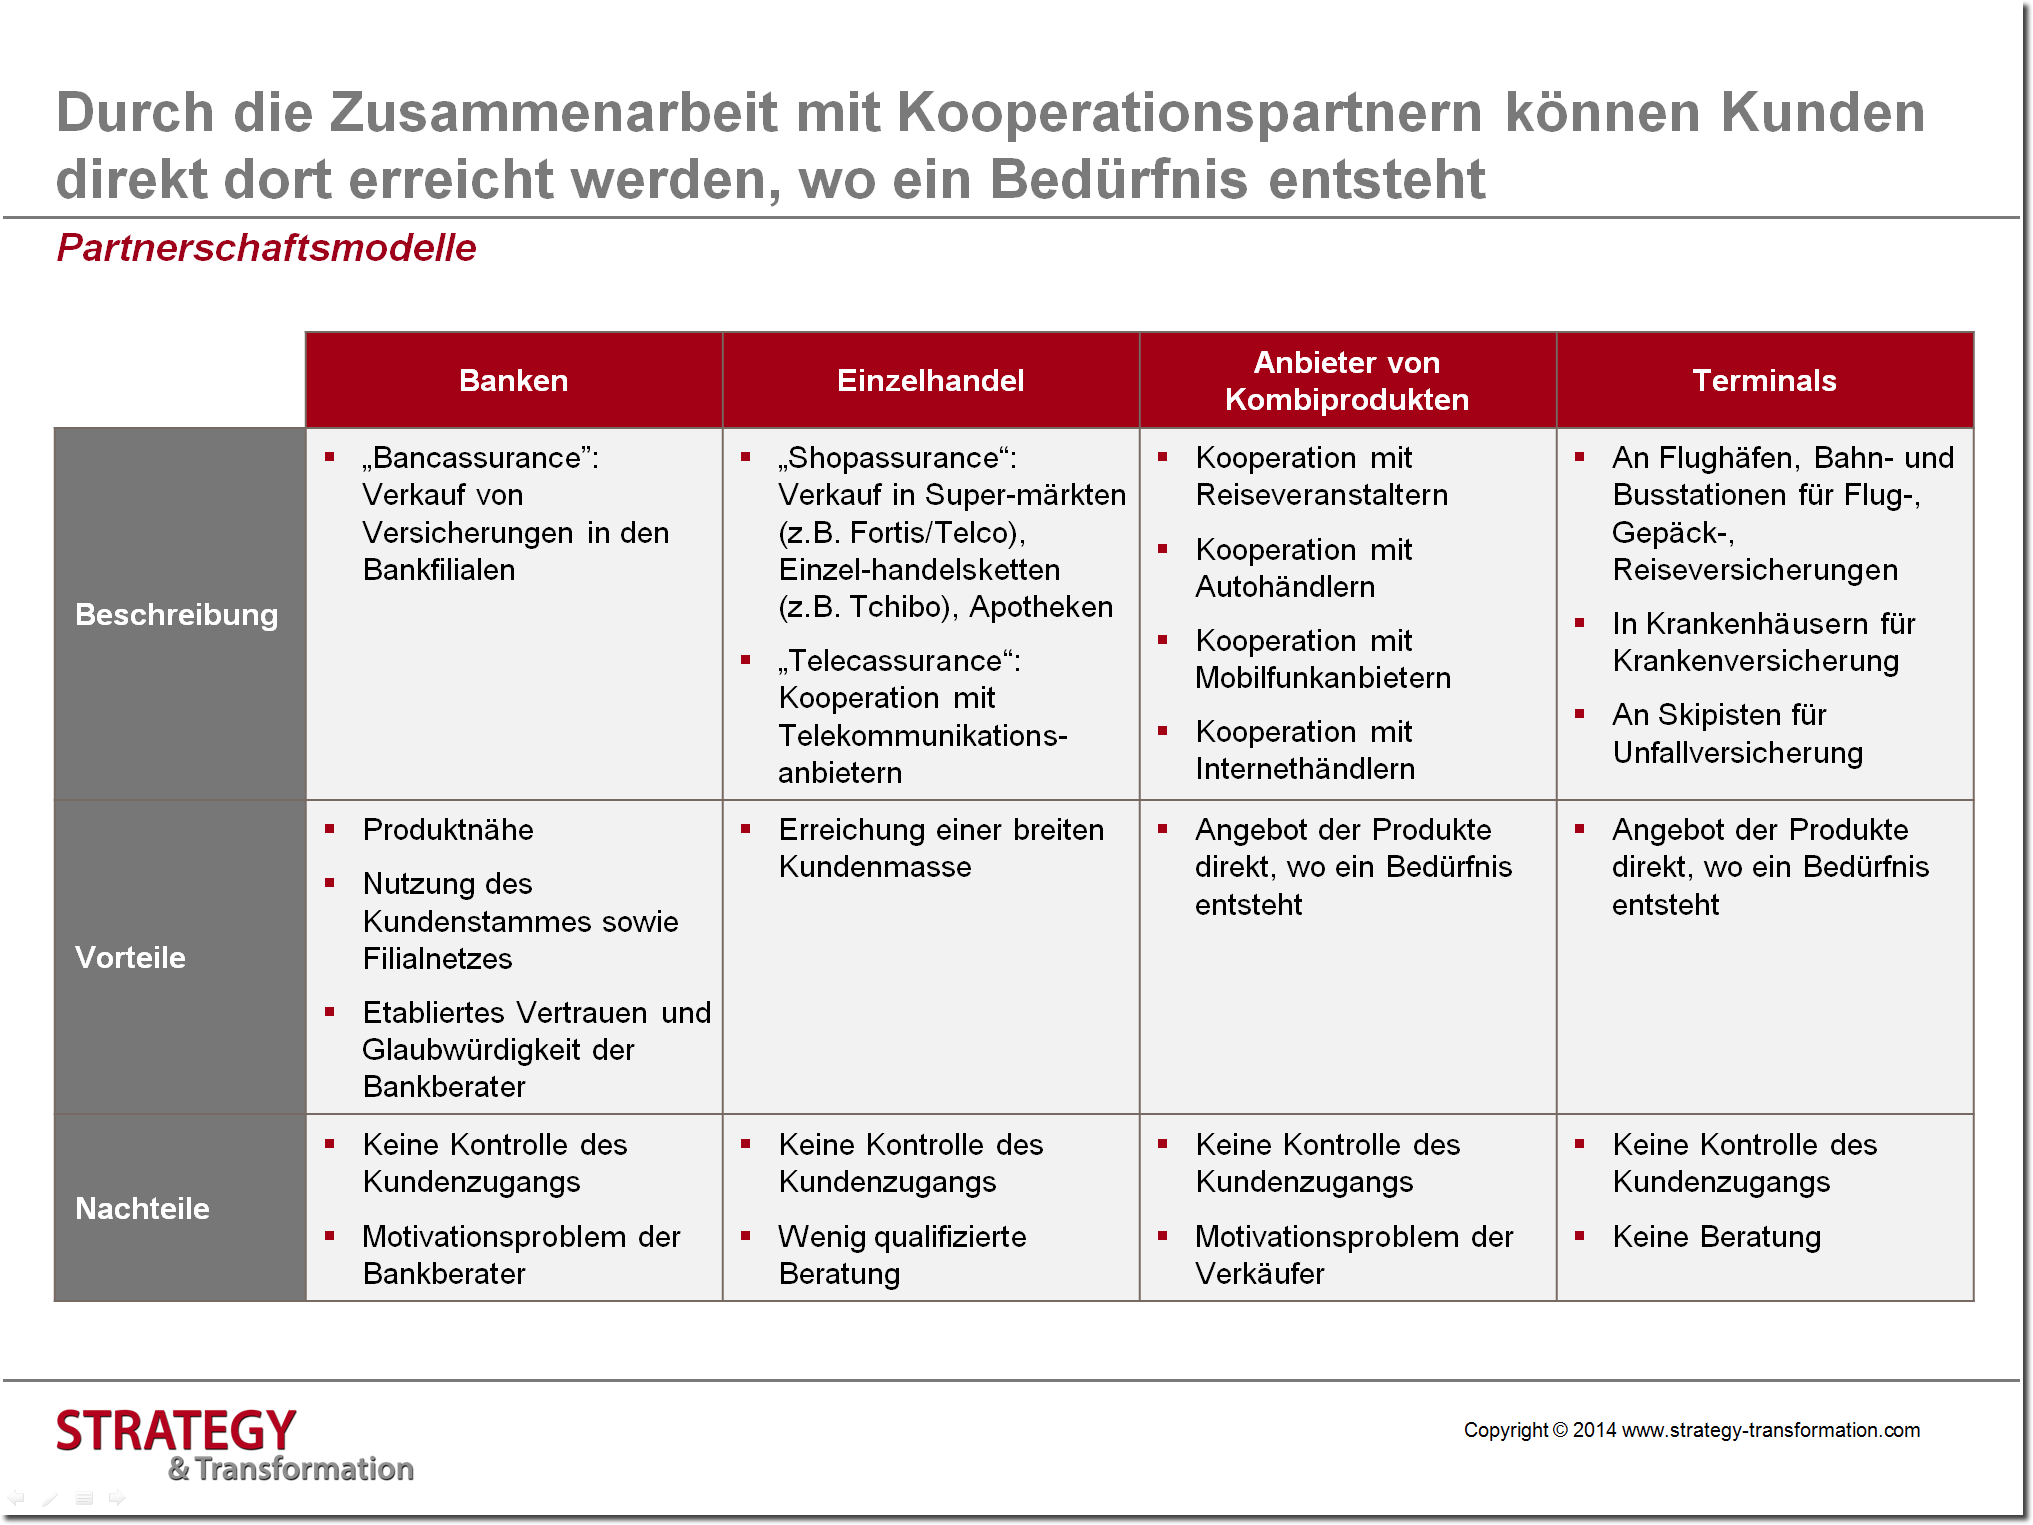 Digitale Transformation Versicherung_Partnerschaftsmodelle